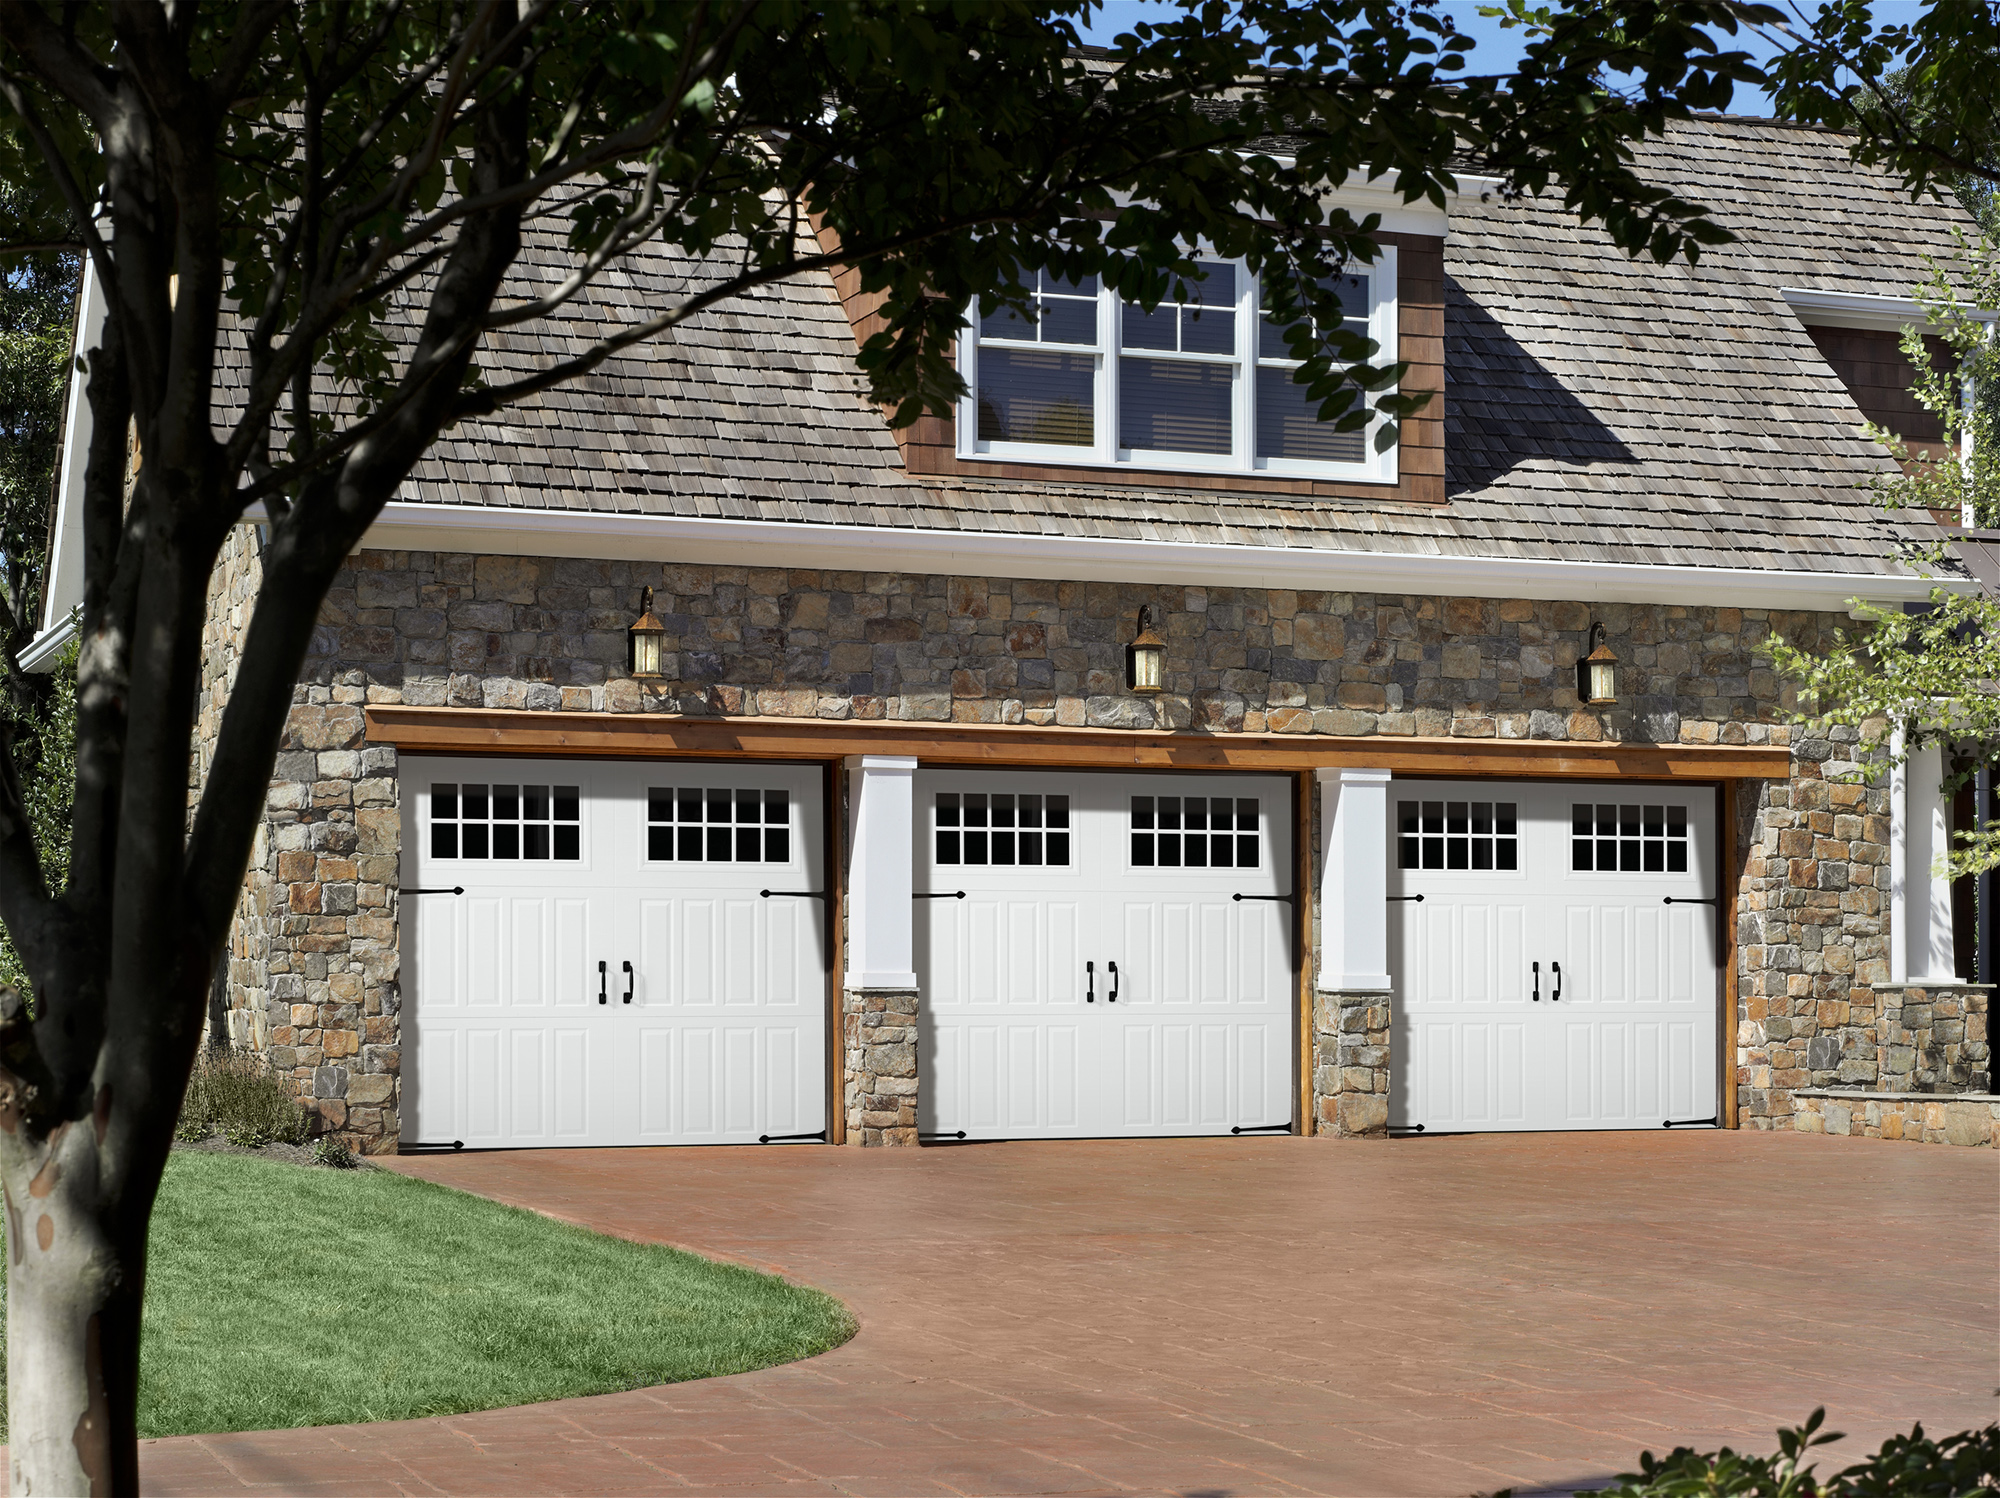 Home ncg doors with over 25 years of experience in the garage industry nc garage doors has built a reputation for fixing garage doors right the first time rubansaba